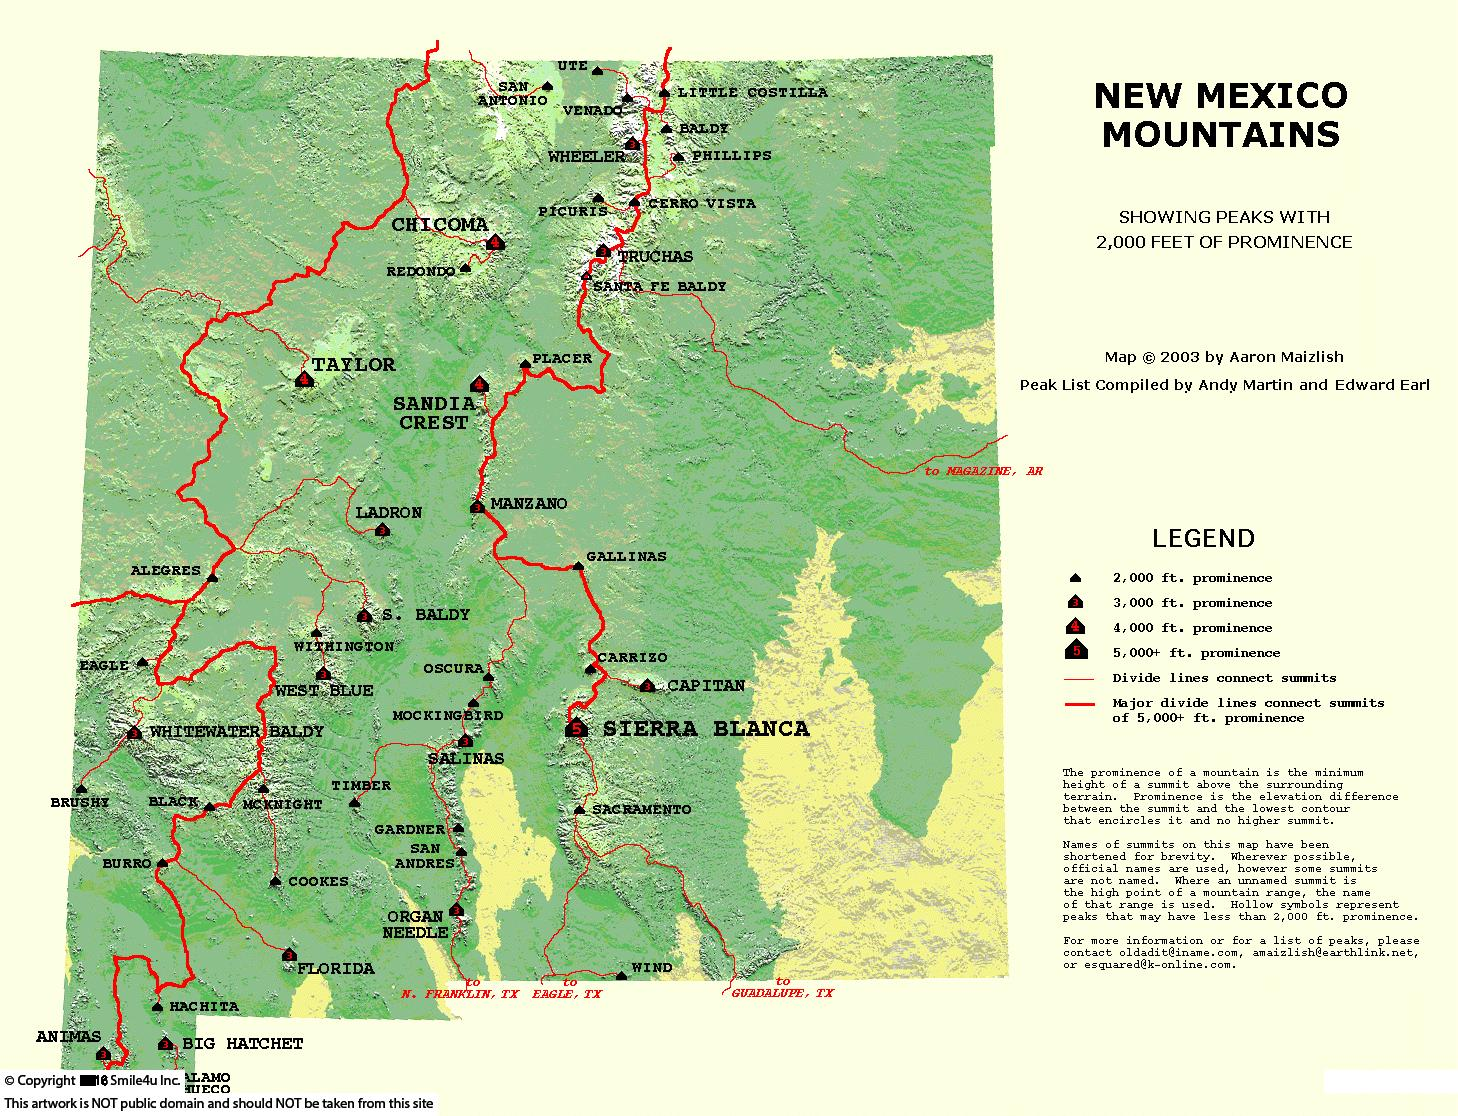 827289_watermarked_newmexicosummits.png